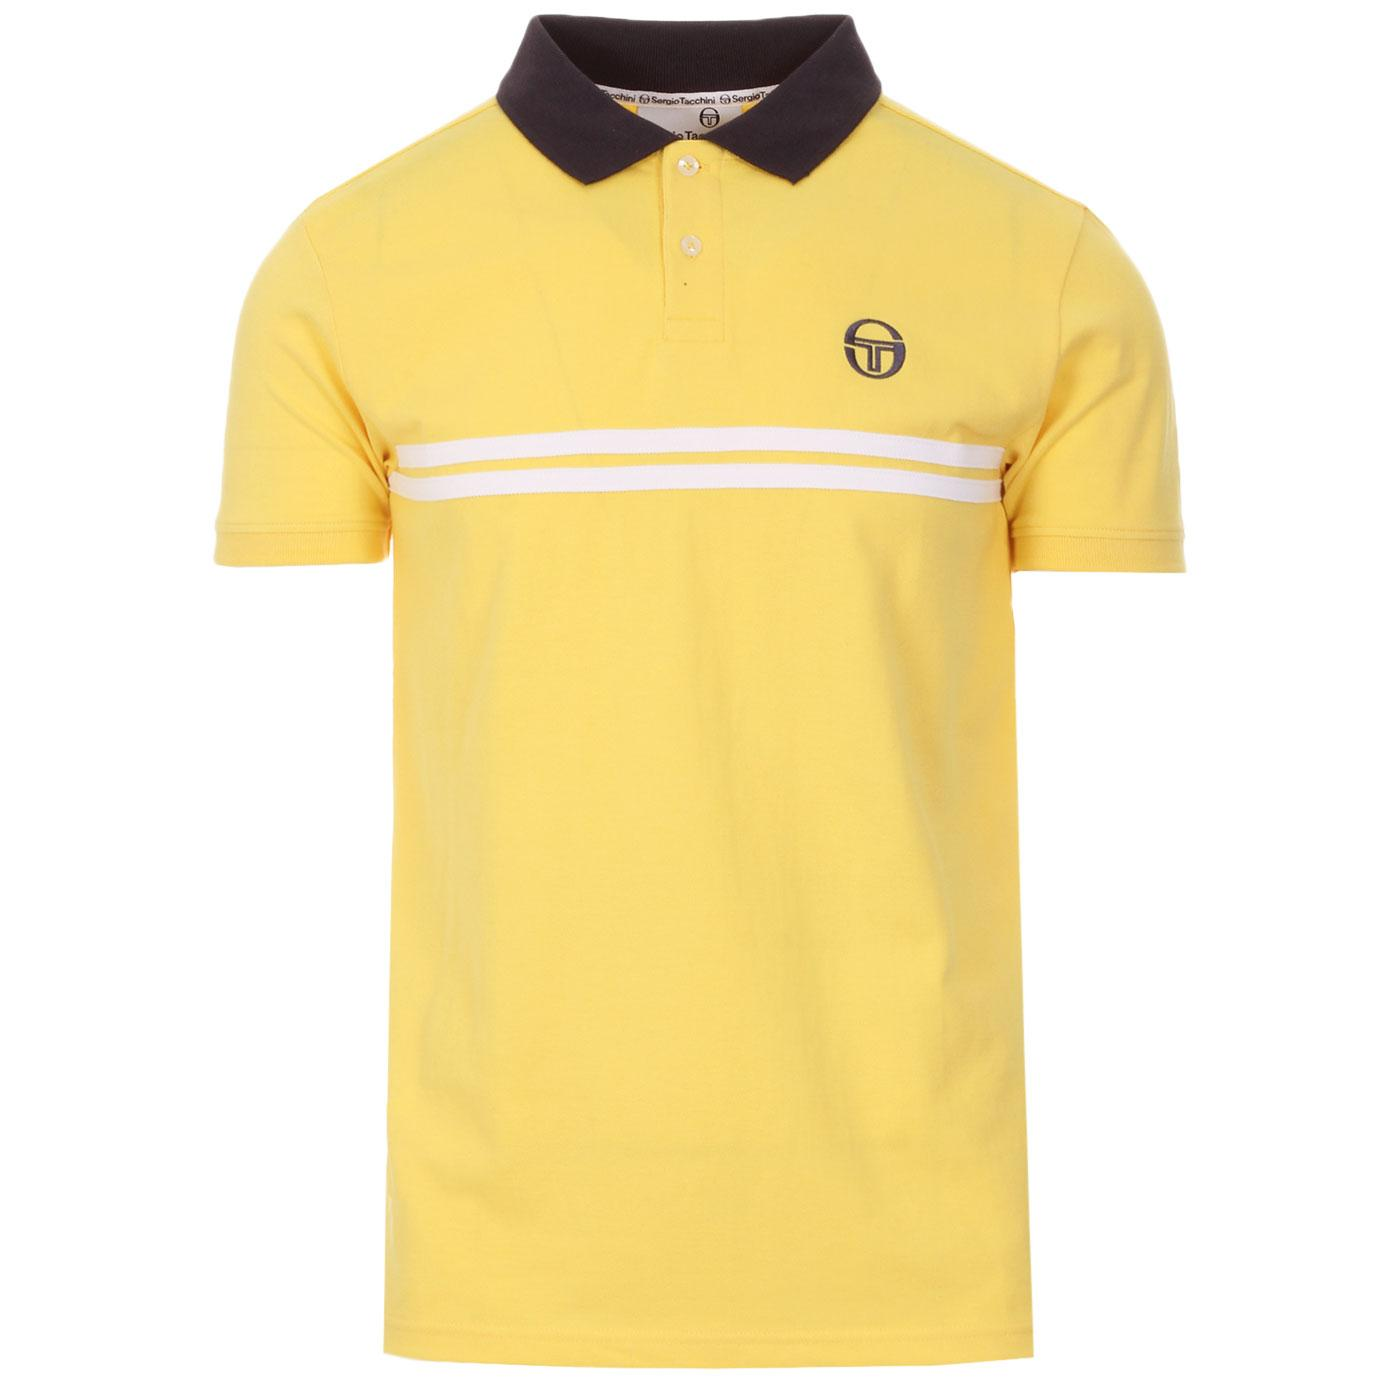 Supermac SERGIO TACCHINI Retro 80s Polo Top (G)